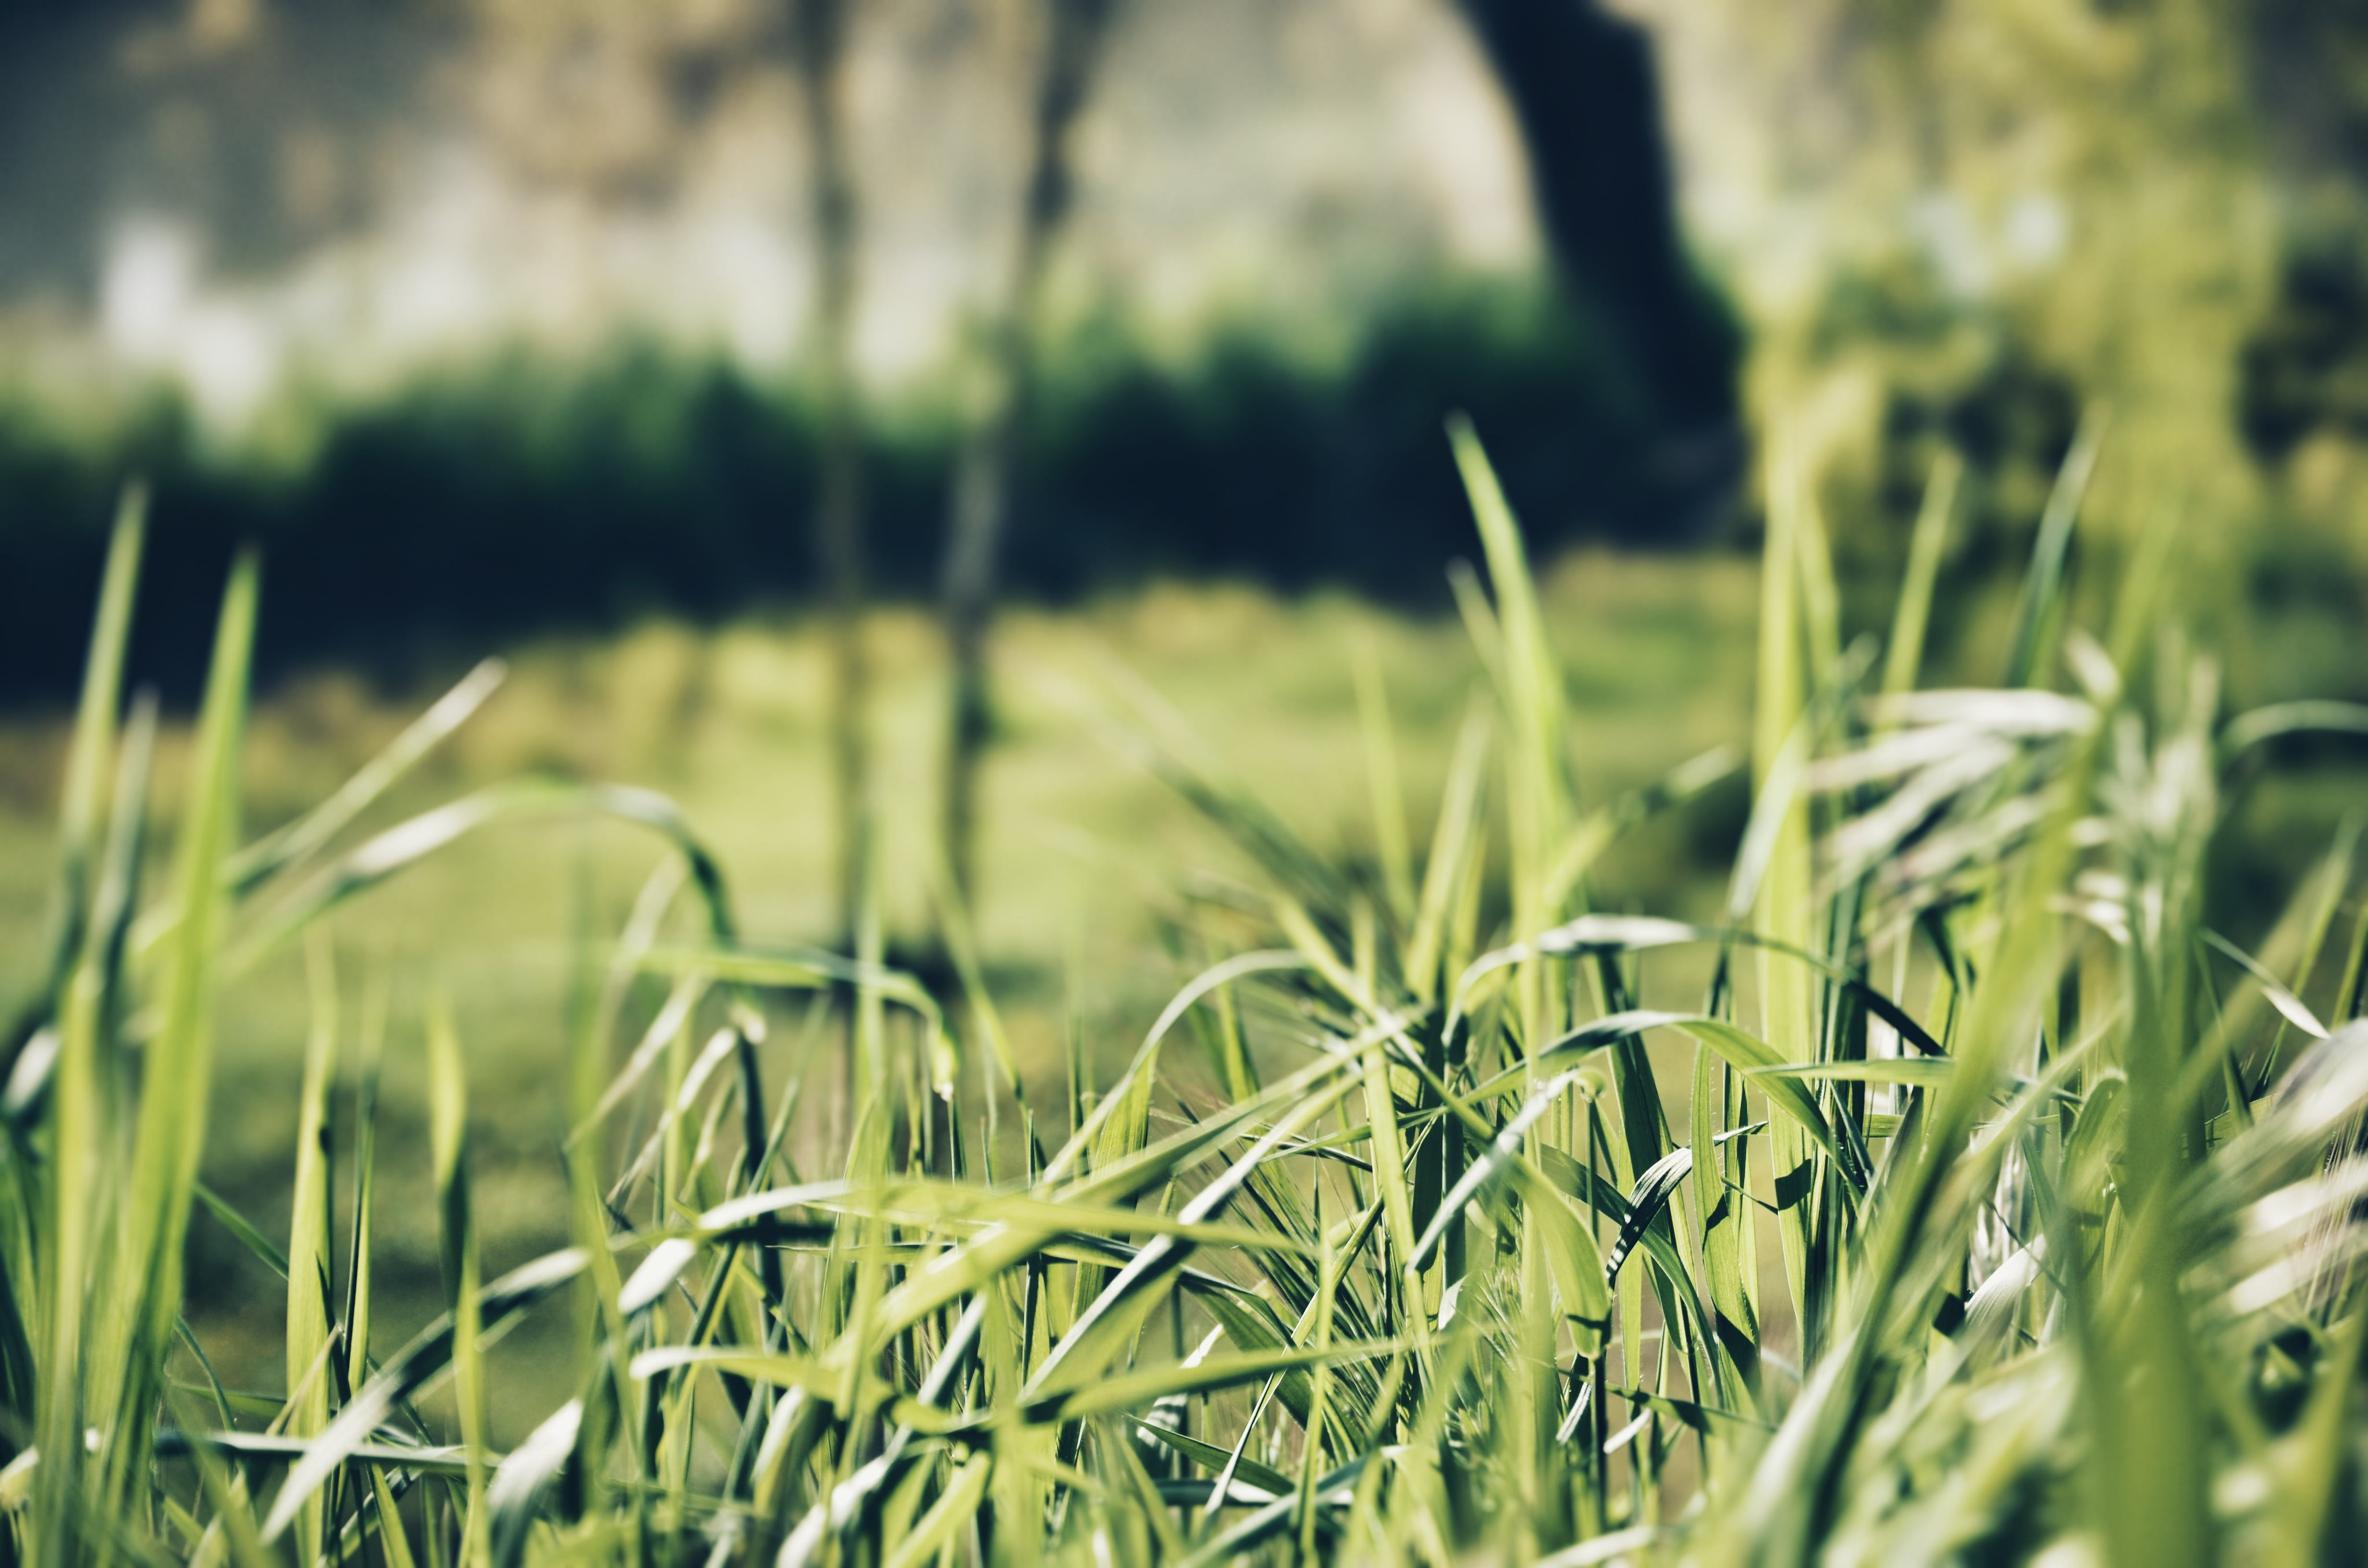 Close-up Photography of Green Grasses